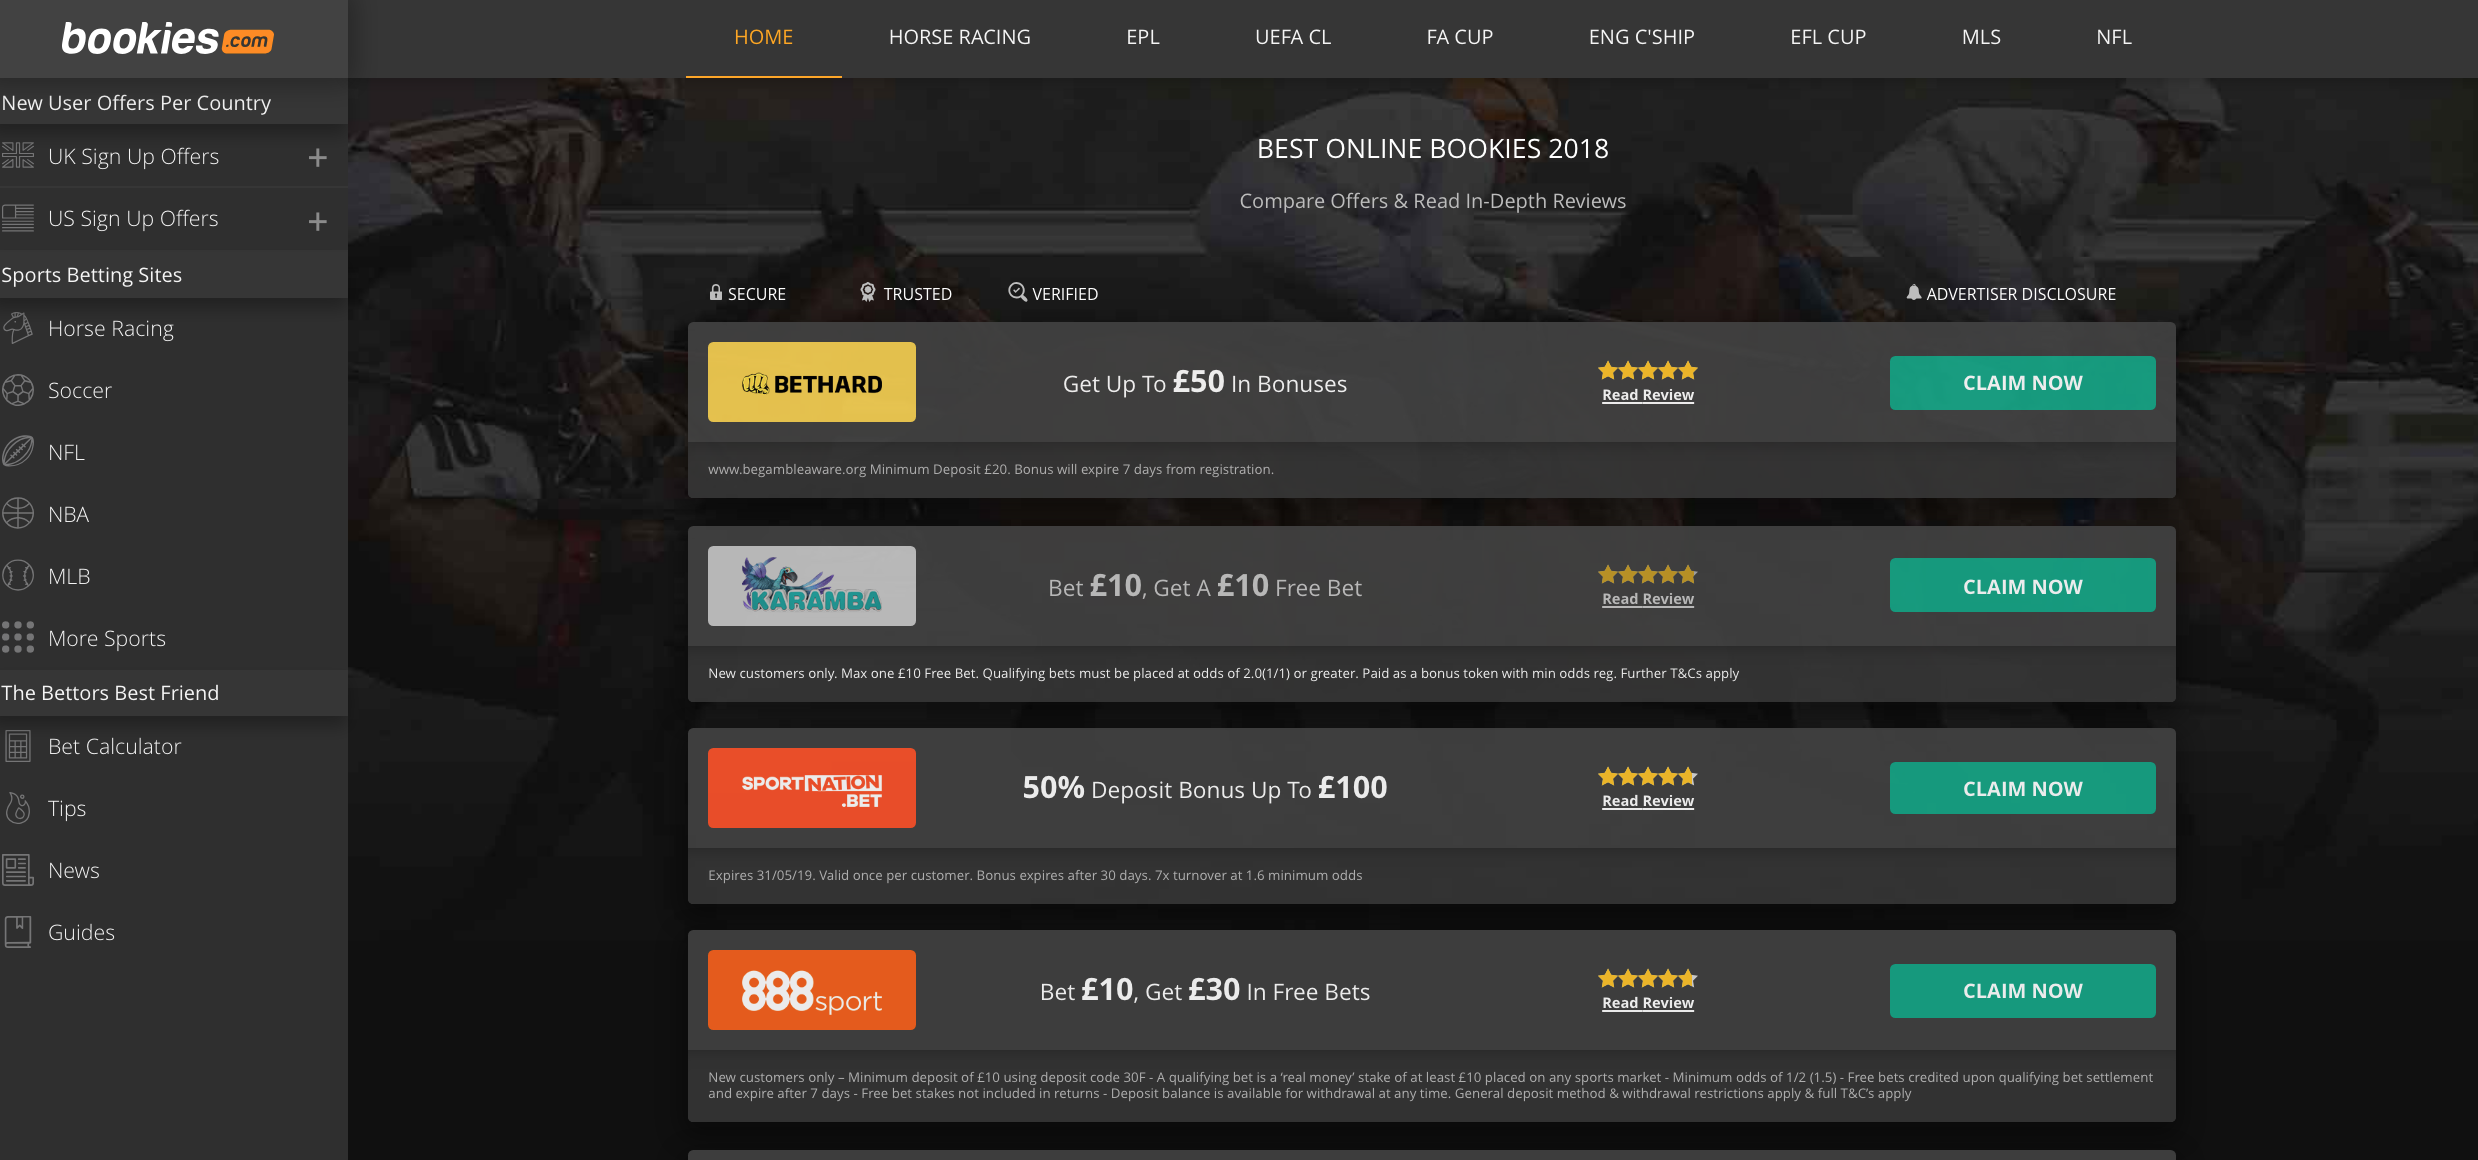 bookies com relaunches aiming to become US betting's 'top authority'